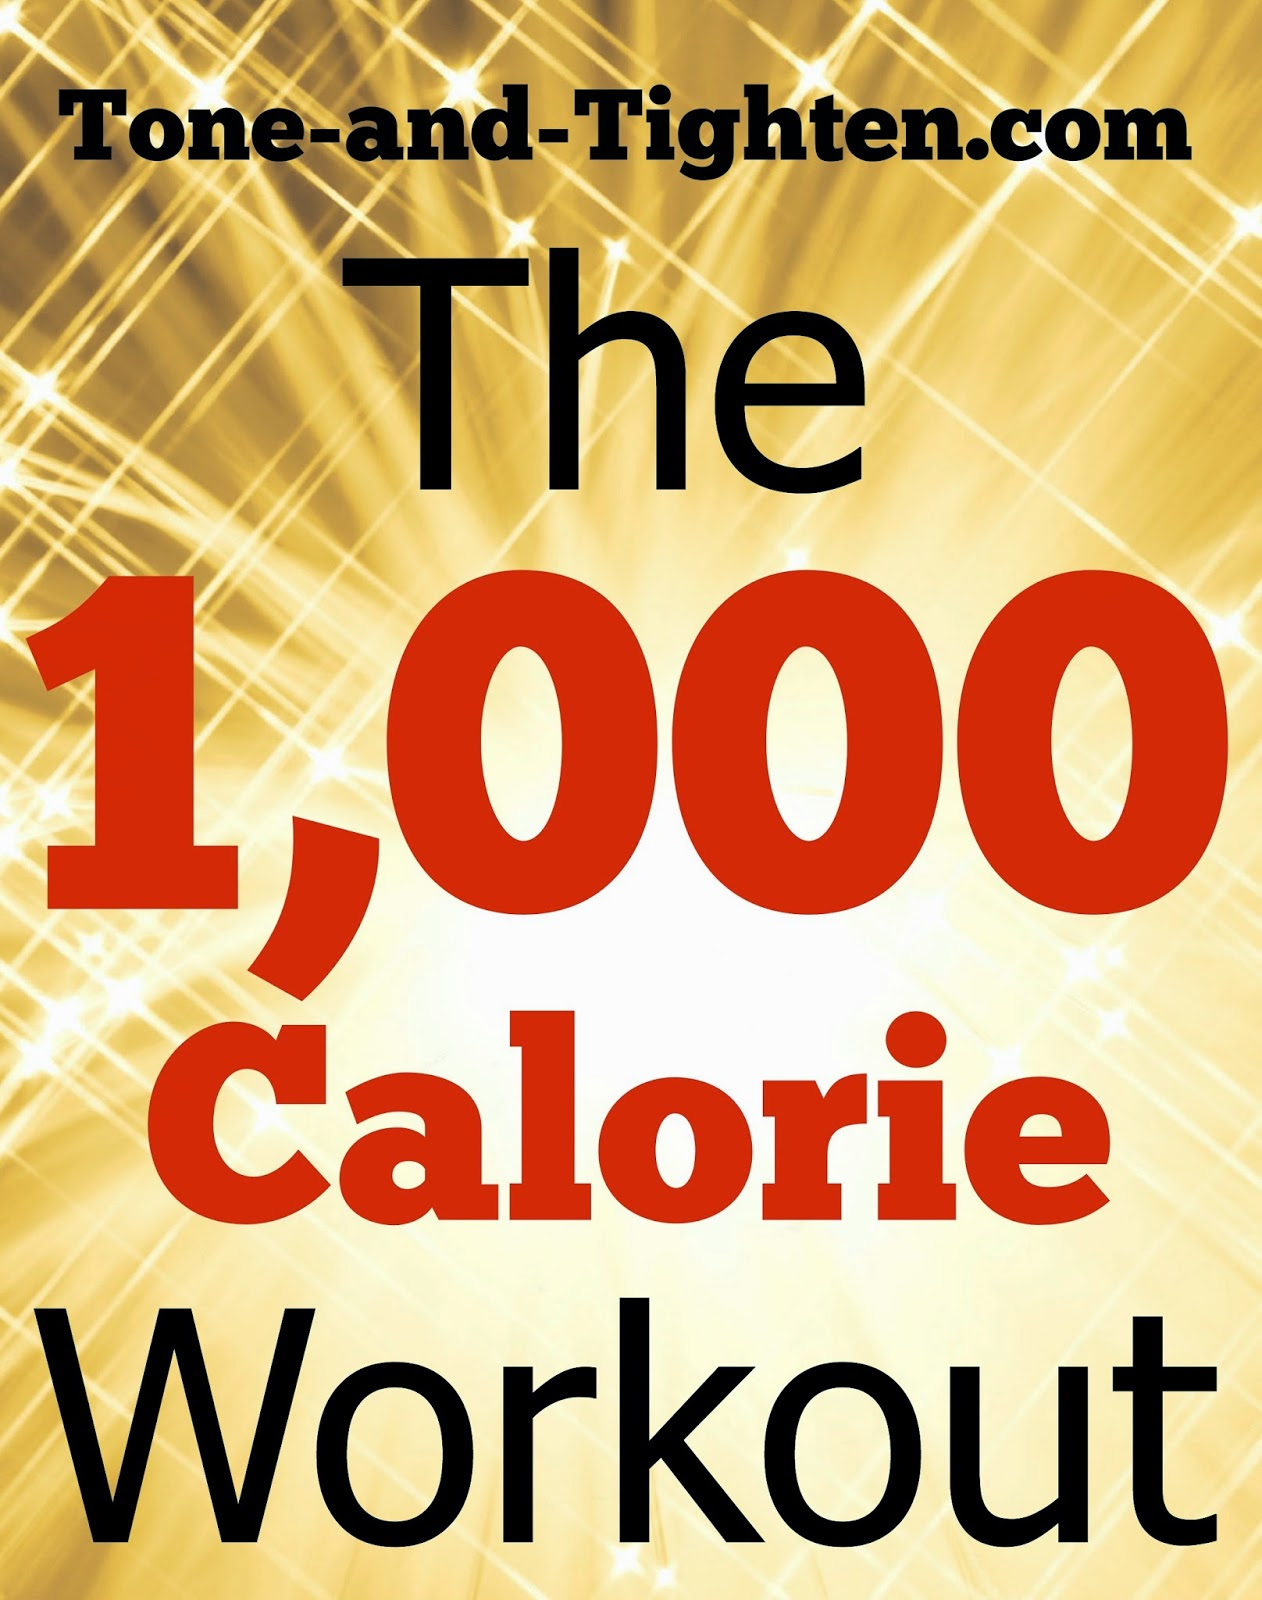 1000 Calorie At Home Workout | Tone and Tighten